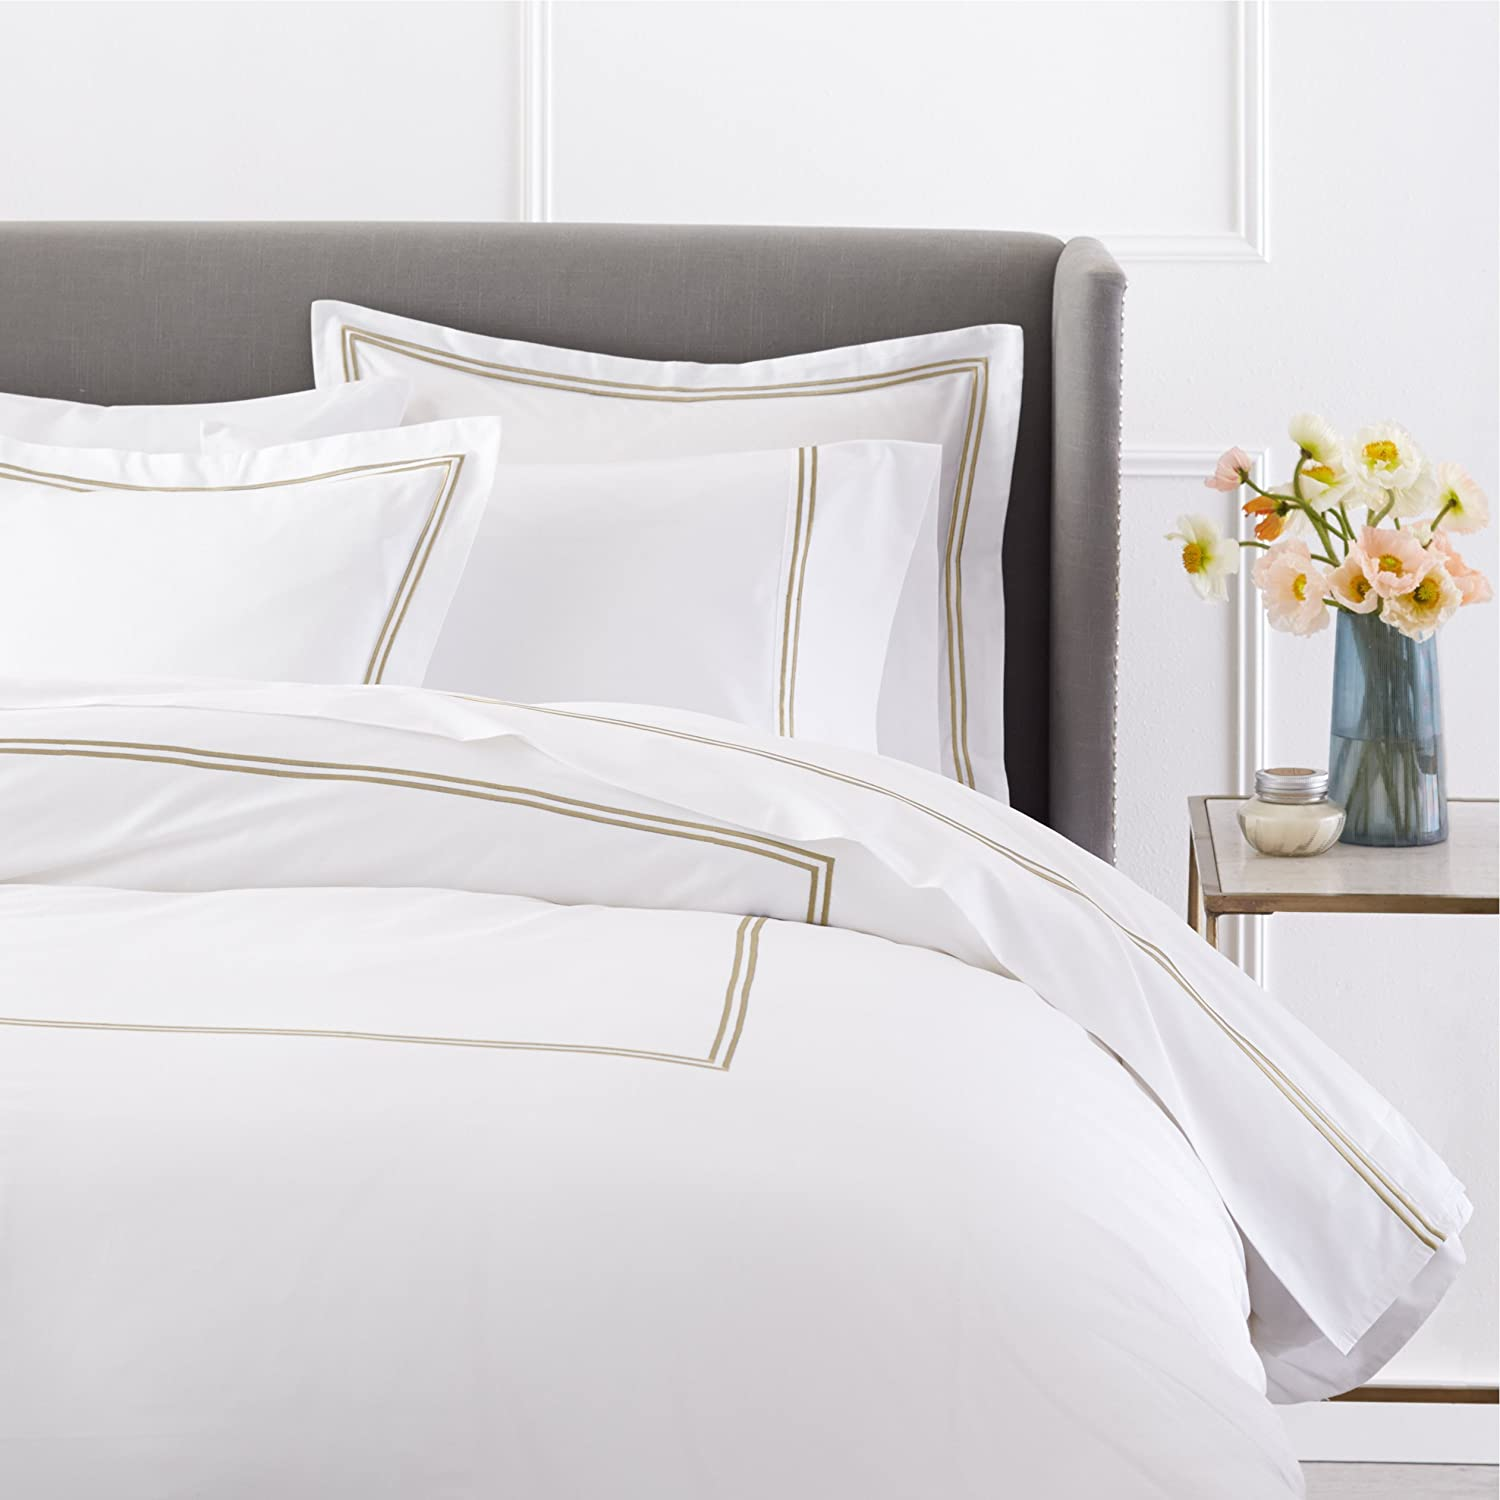 Pinzon 400 Thread Count Egyptian Cotton Sateen Hotel Stitch Duvet Cover - Full or Queen, Taupe